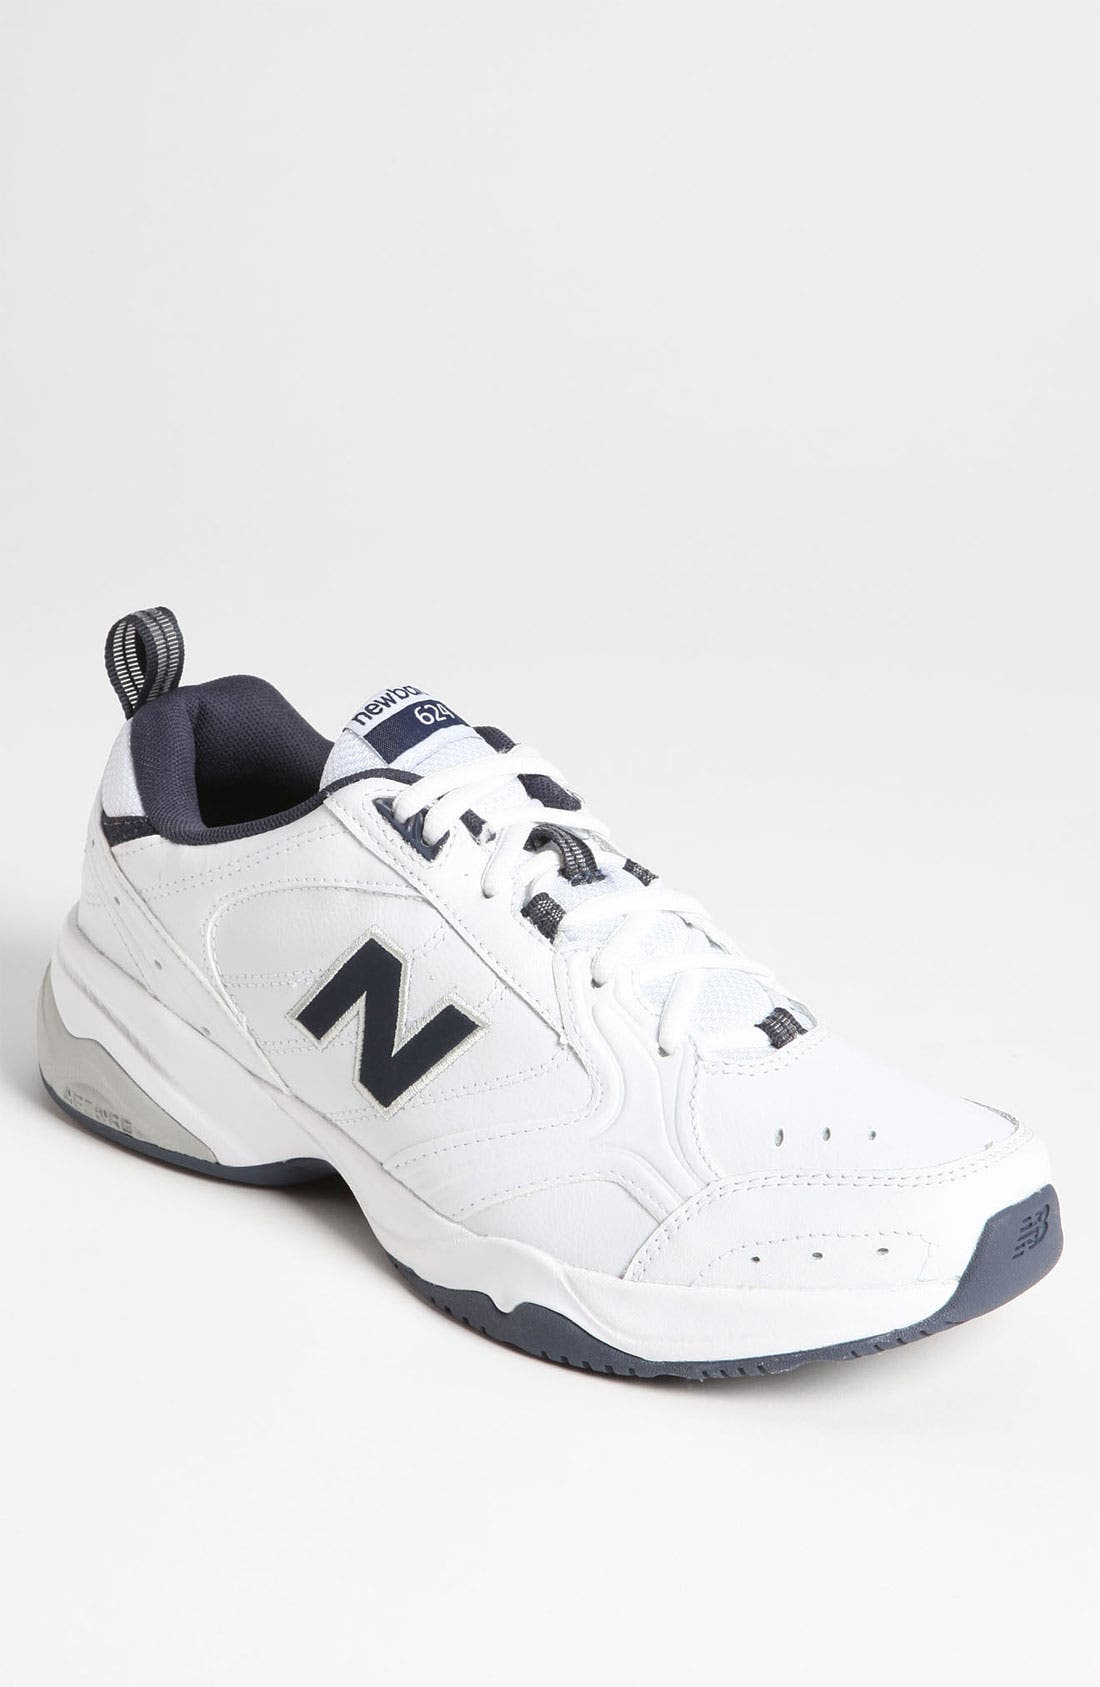 '624' Training Shoe,                         Main,                         color, White/ Navy